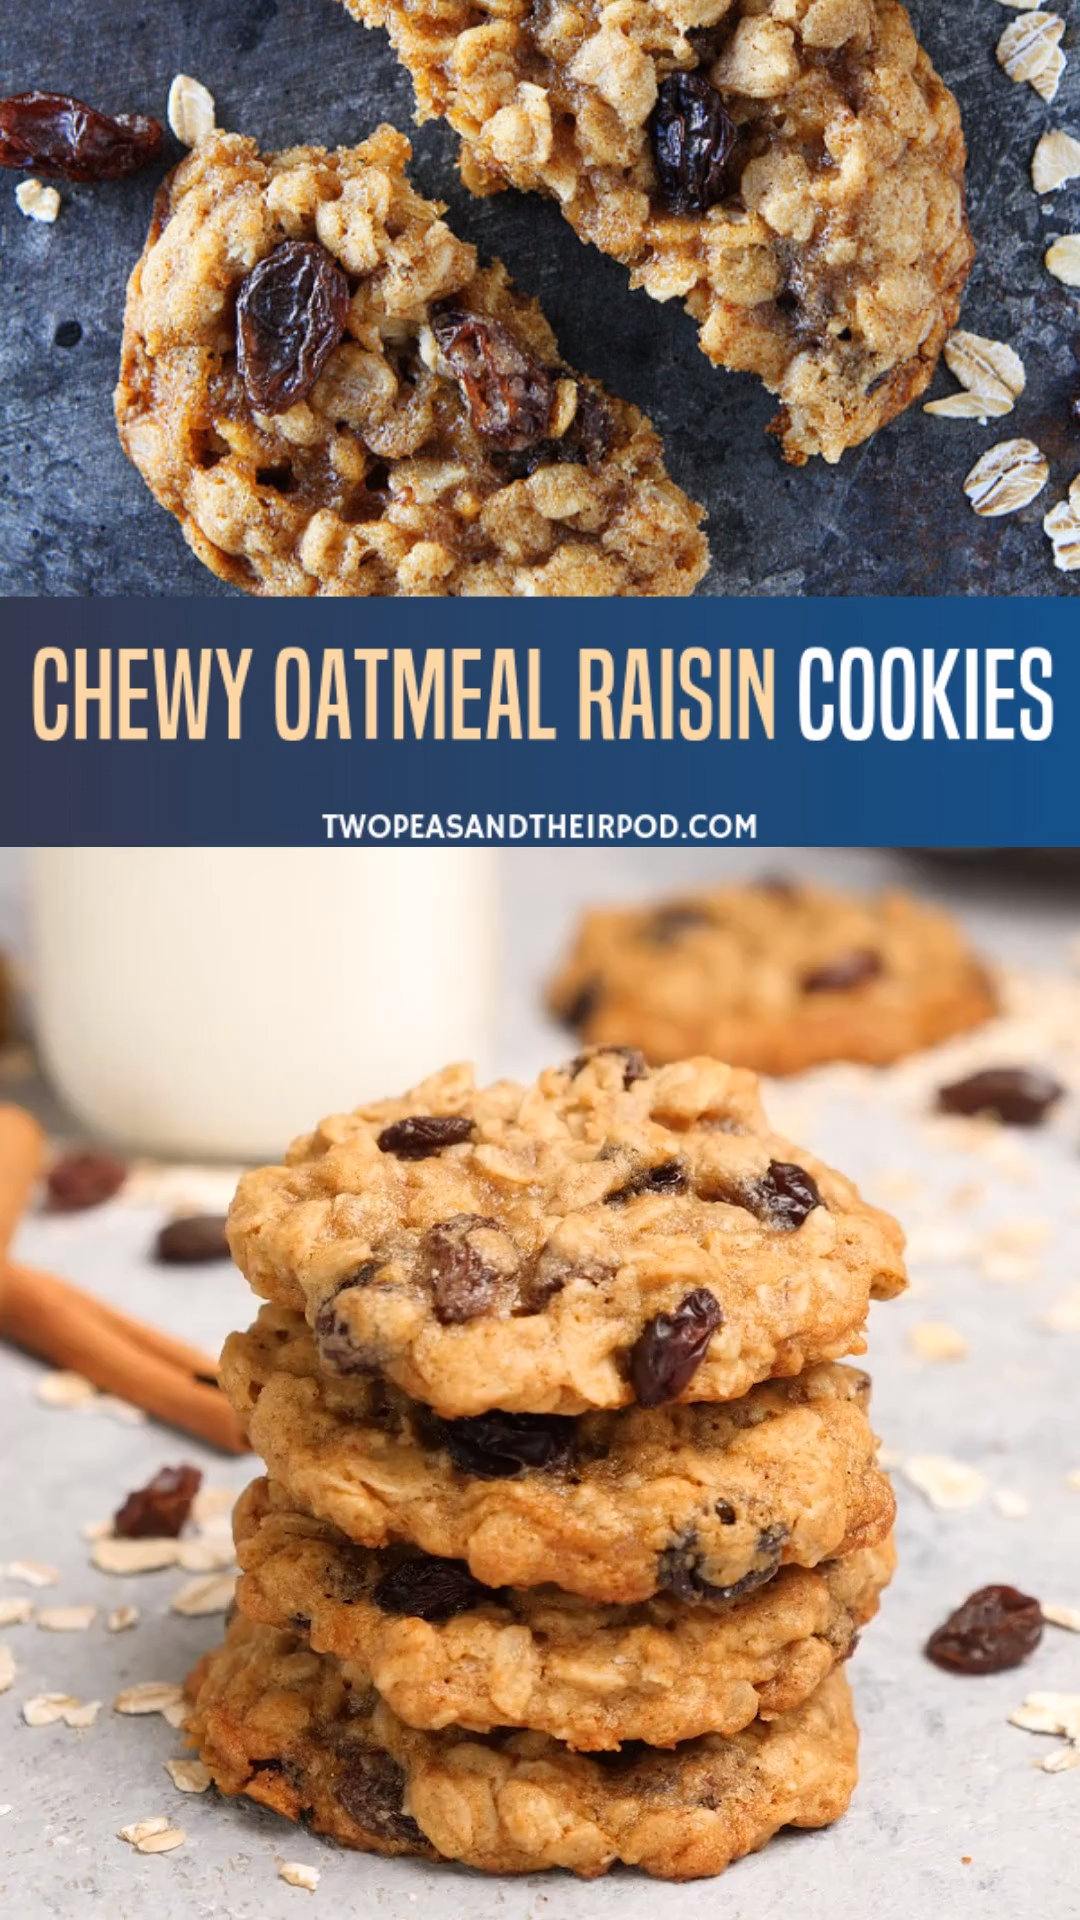 Photo of Chewy Oatmeal Raisin Cookies